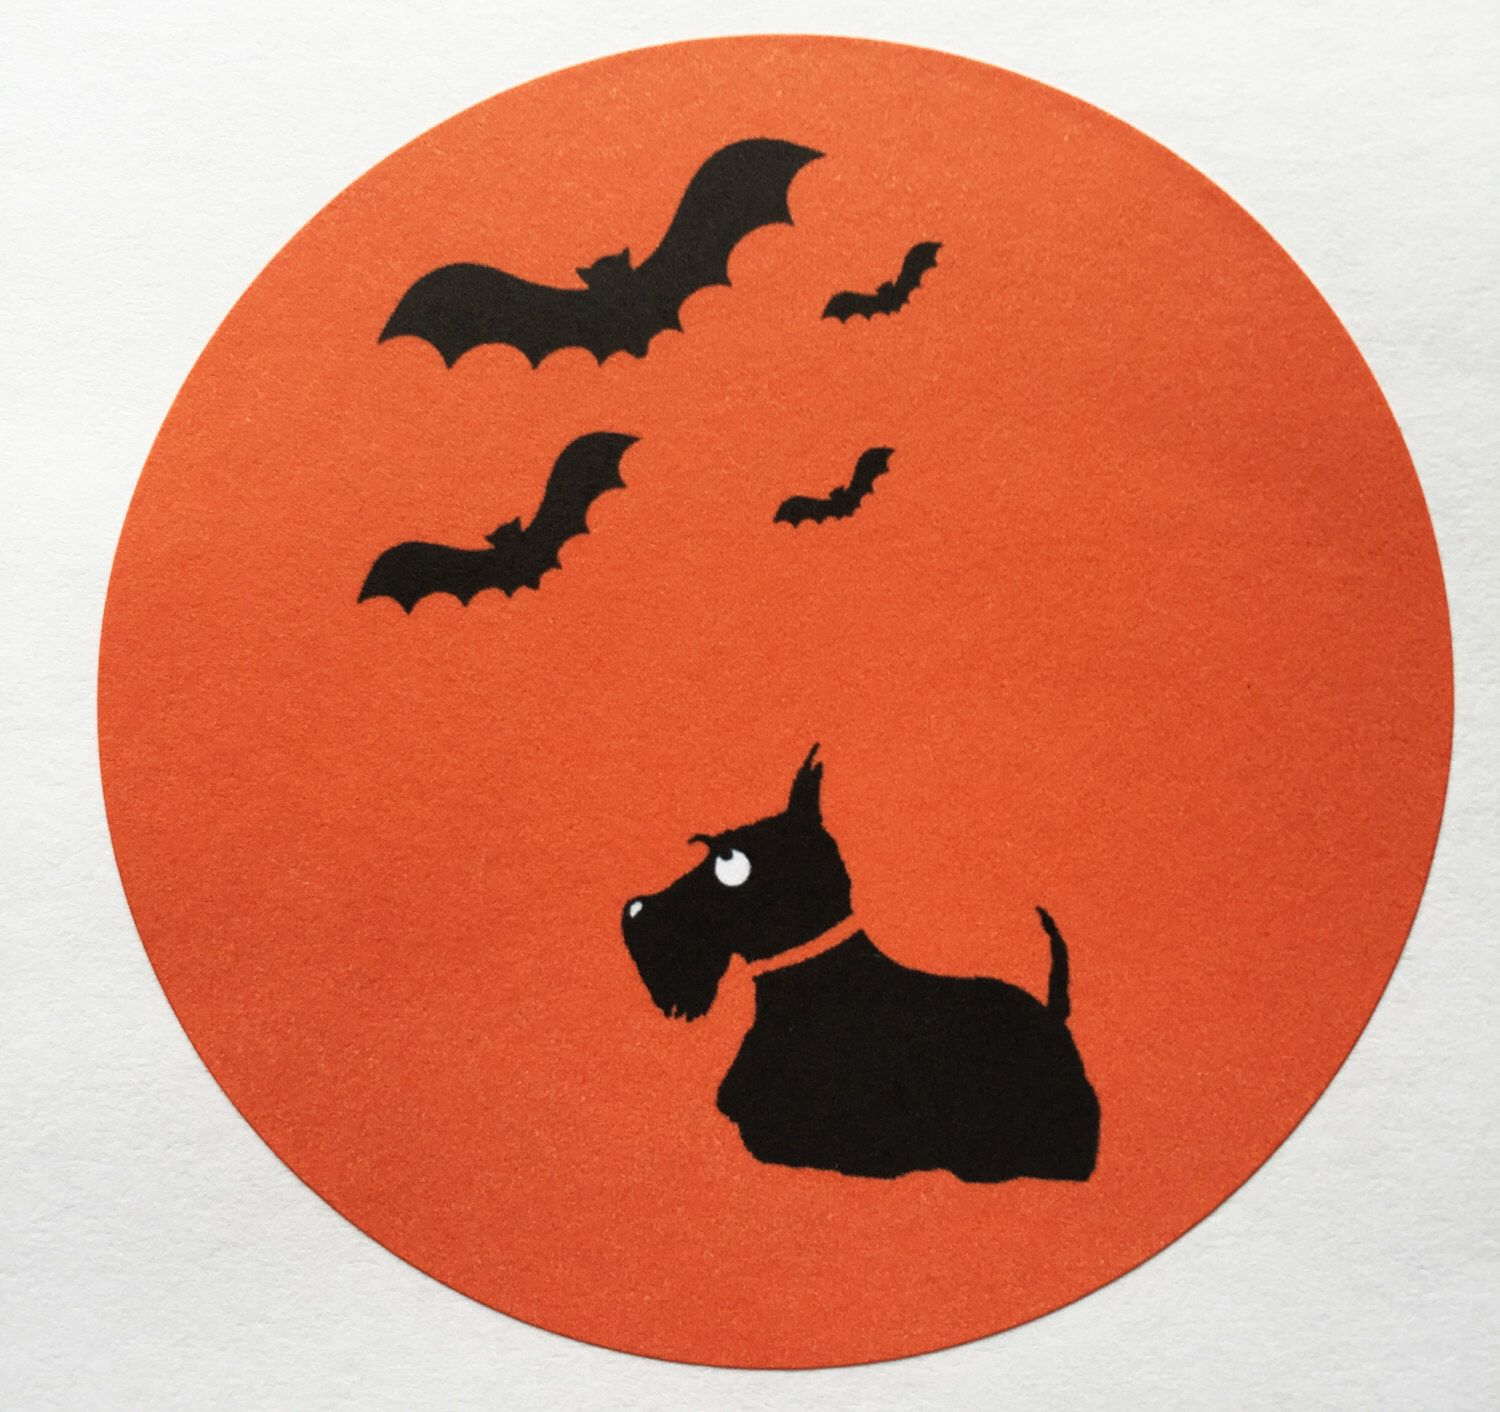 across or Inches Scottie Dog circle stickers / envelope seals 12 'Happy  Halloween' stickers & 12 Scottie Dog stickers Please note colours may vary  from your ...